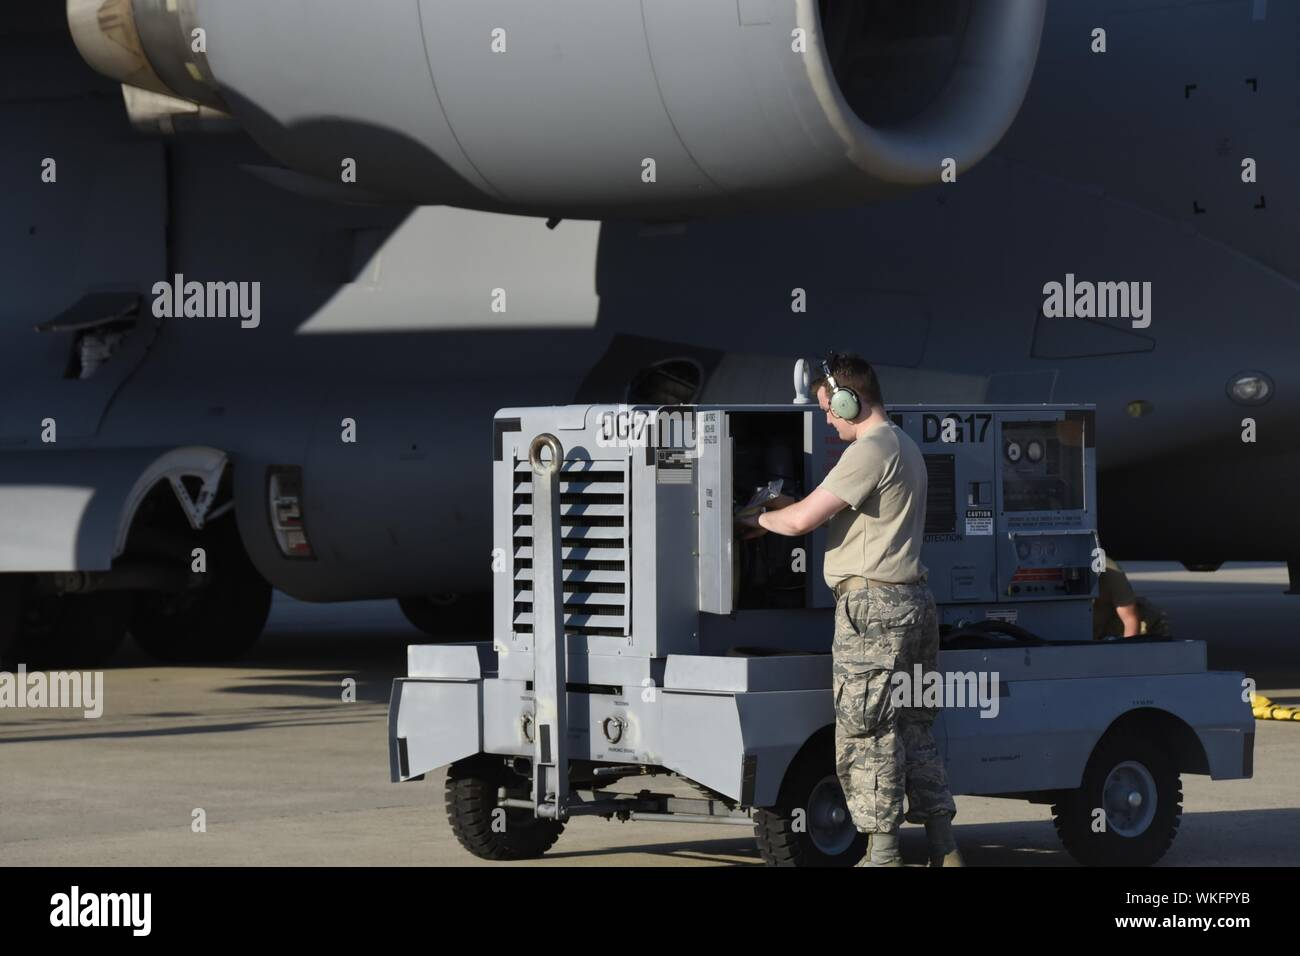 Members of the 145th Maintenance Group prepare the C-17 Globemaster III's to deploy in support of Hurricane Dorian relief in advance of the storms arrival, while at the North Carolina Air National Guard Base, Charlotte NC, 3 Sep. 2019, September 3, 2019. Hurricane Dorian is a Category three storm that caused severe damage to the Bahamas with a projection to hit North Carolina, each year the 145th Airlift Wing responds and prepares for any hurricane in the event of stateside landfall. Image courtesy Airman 1st Class Juan Paz/145th Airlift Wing, Public Affairs North Carolina Air National Guard.  - Stock Photo